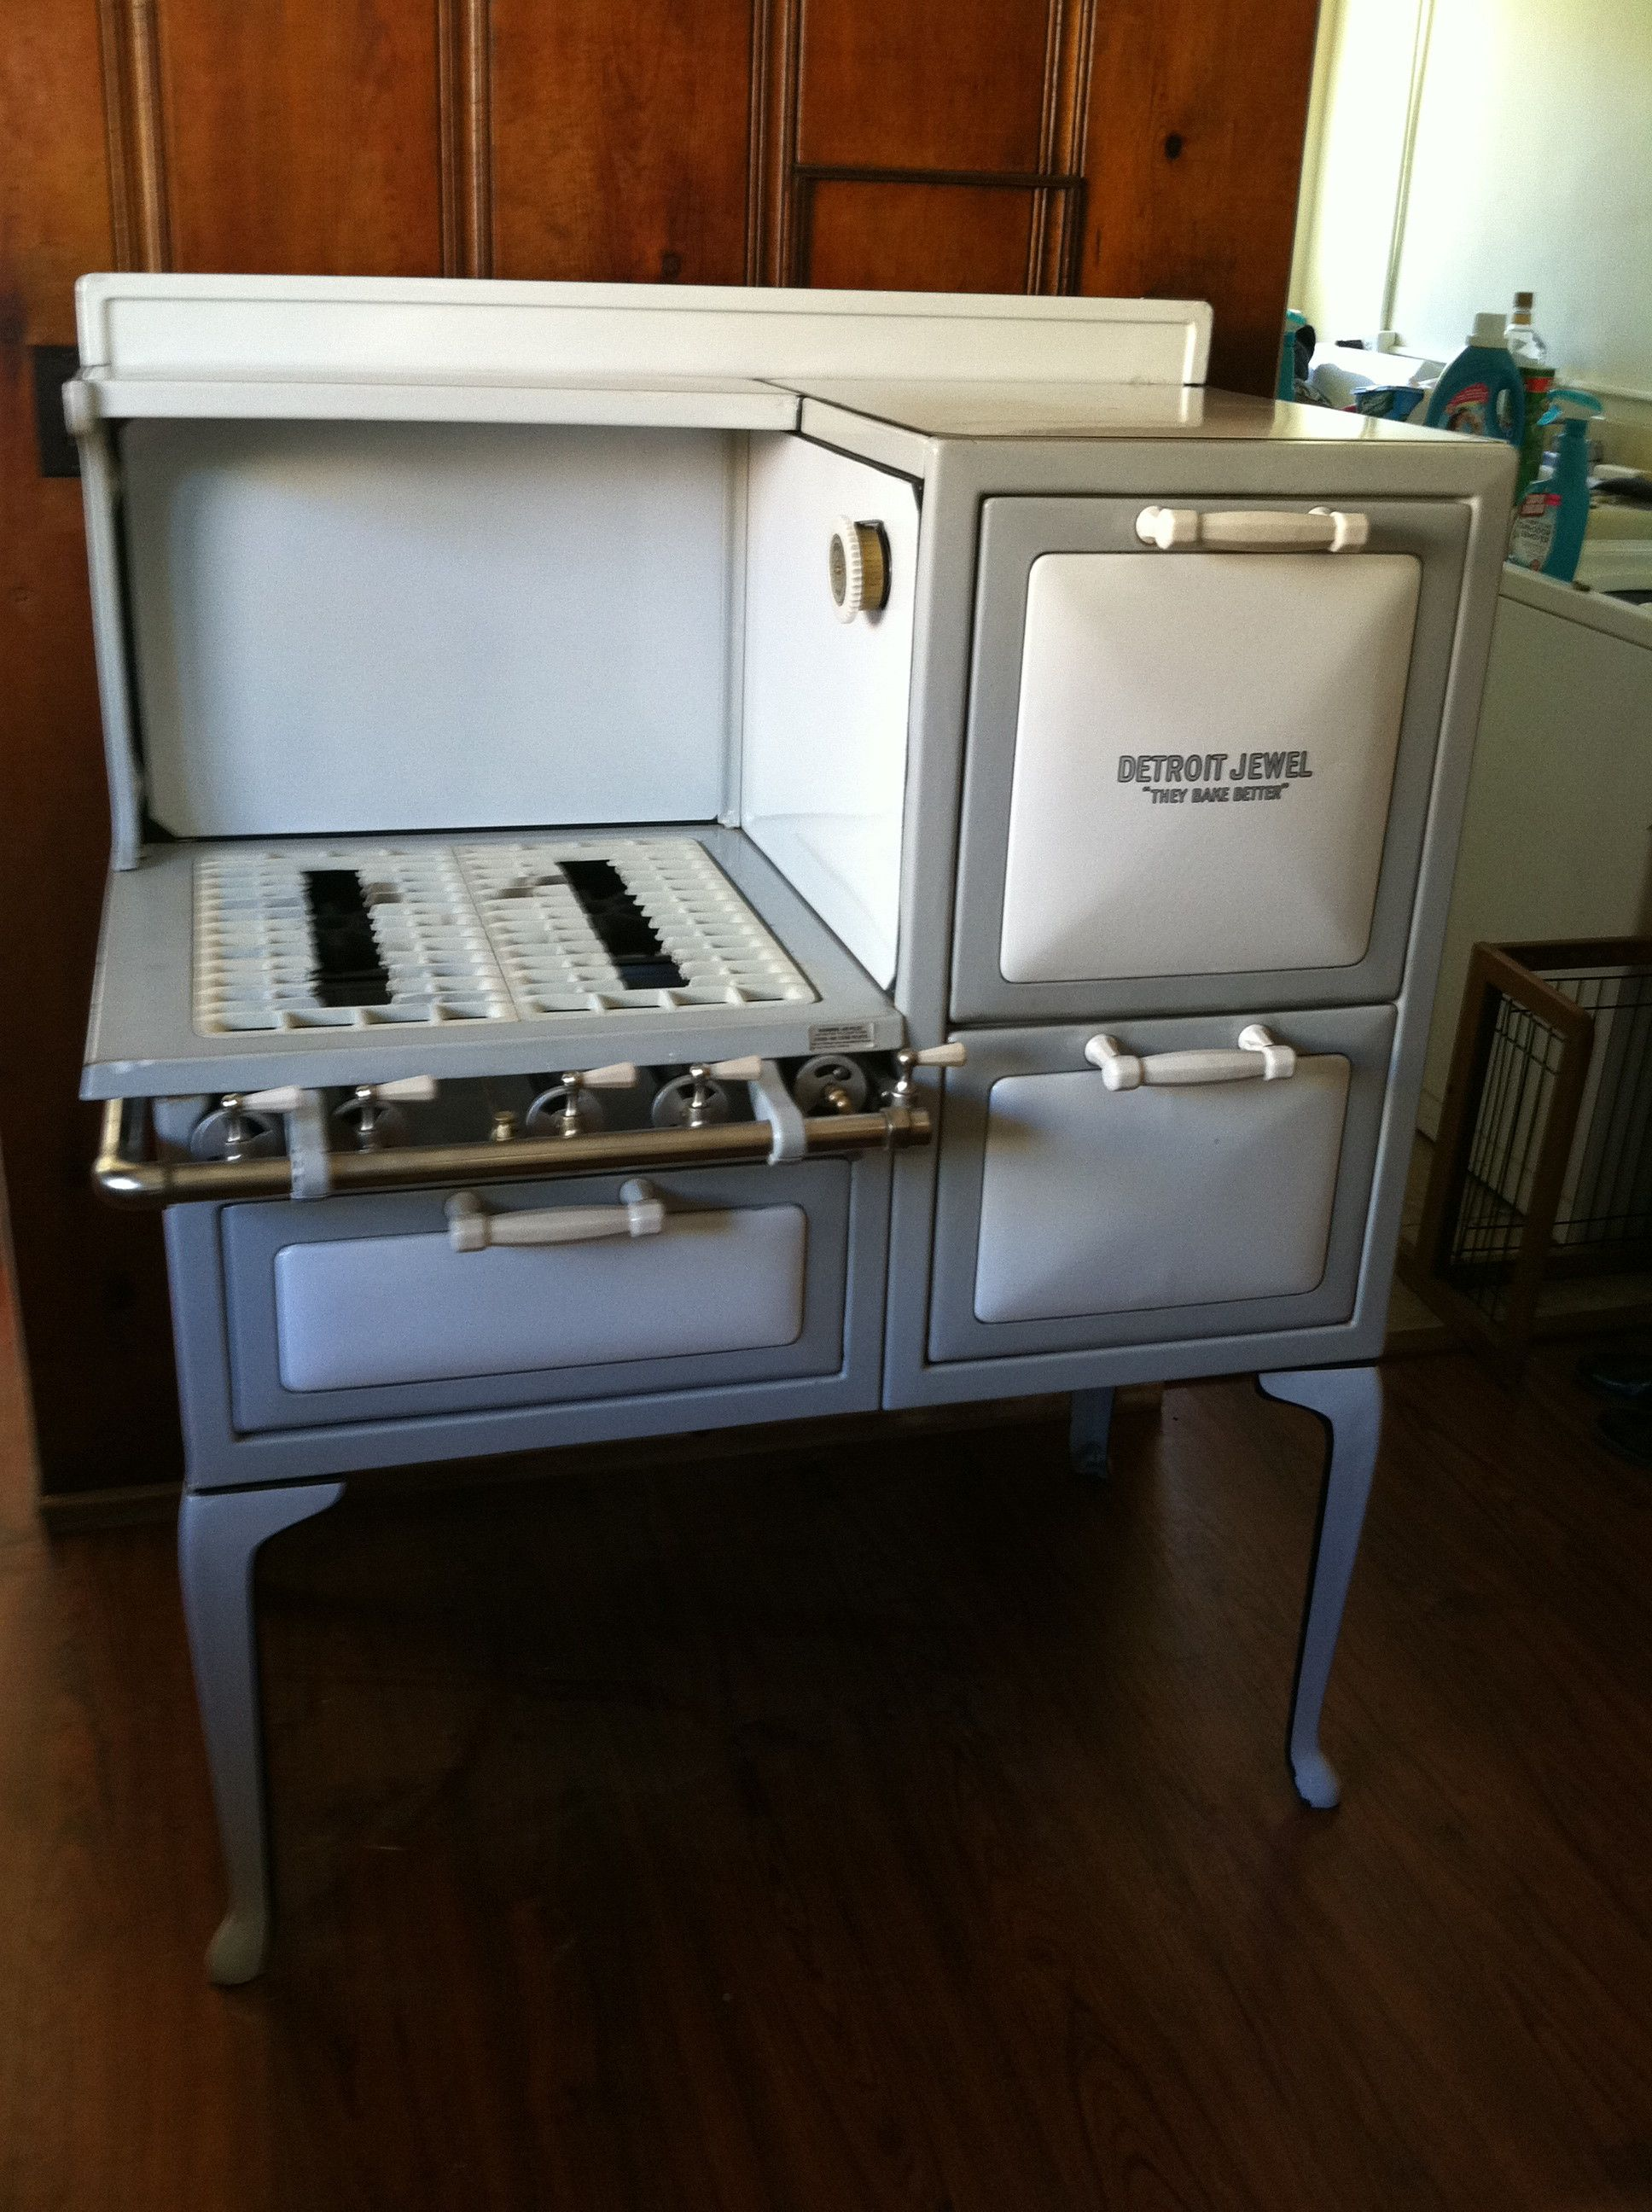 Antique Enterprise Stove Very Old A Nice Piece | eBay | vintage ...